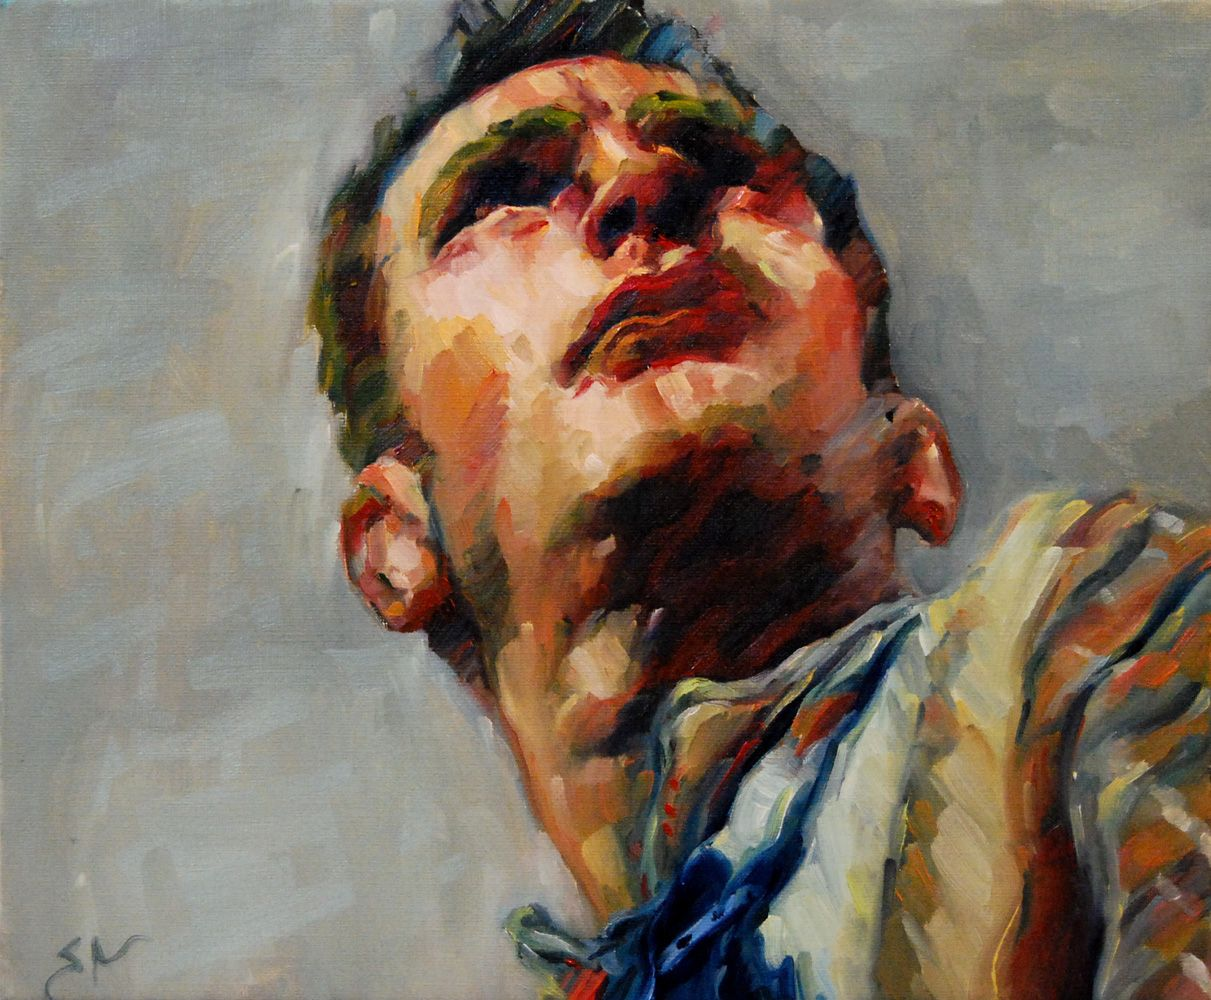 Contemporary Figurative Painting | Figurative | Pinterest ...